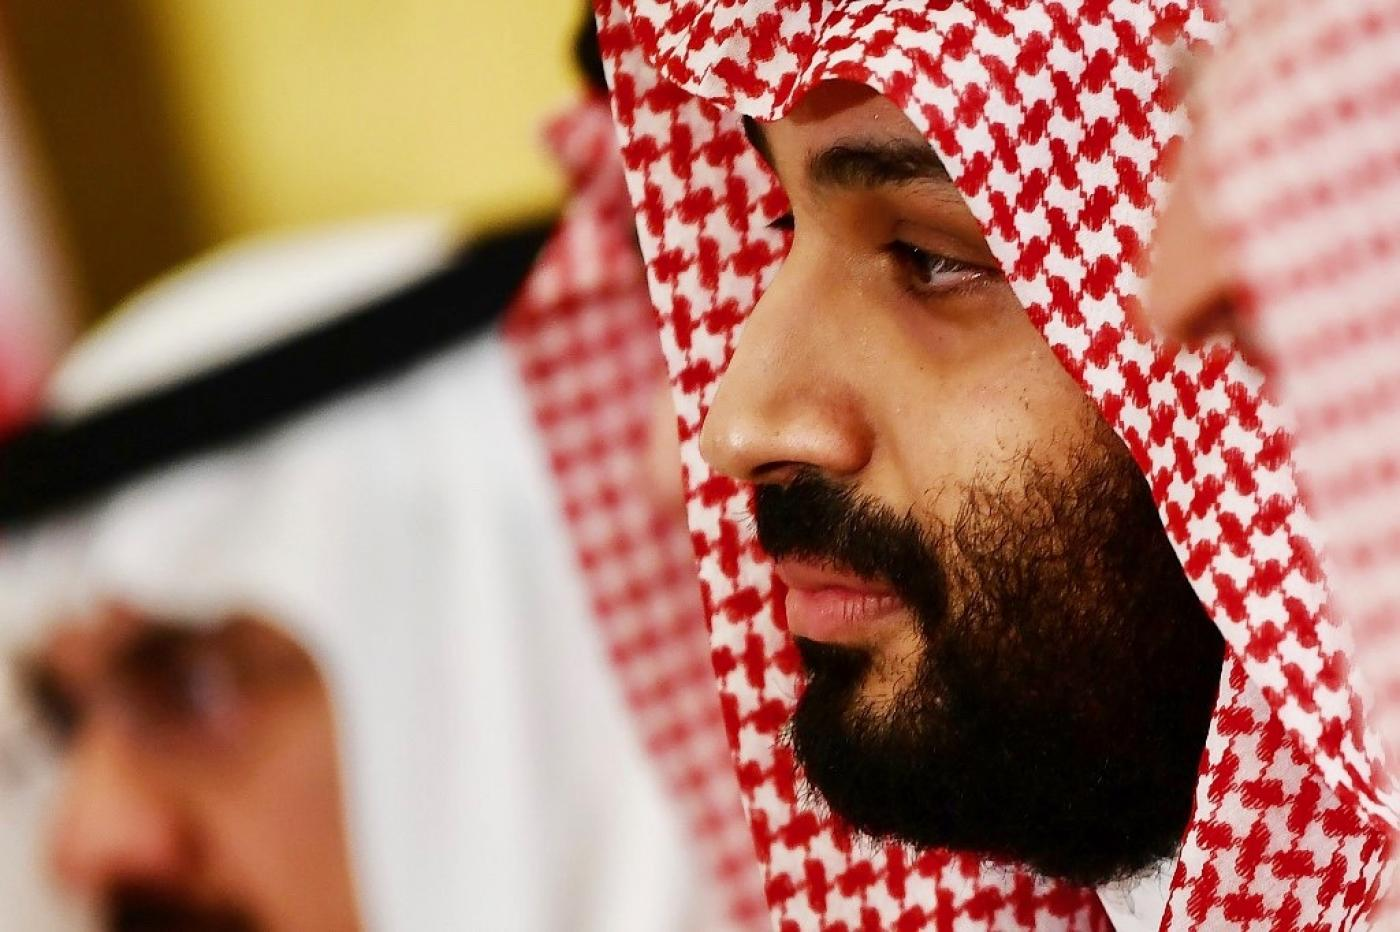 MBS Warns of Possible War with Iran, Disruption to Global Economy